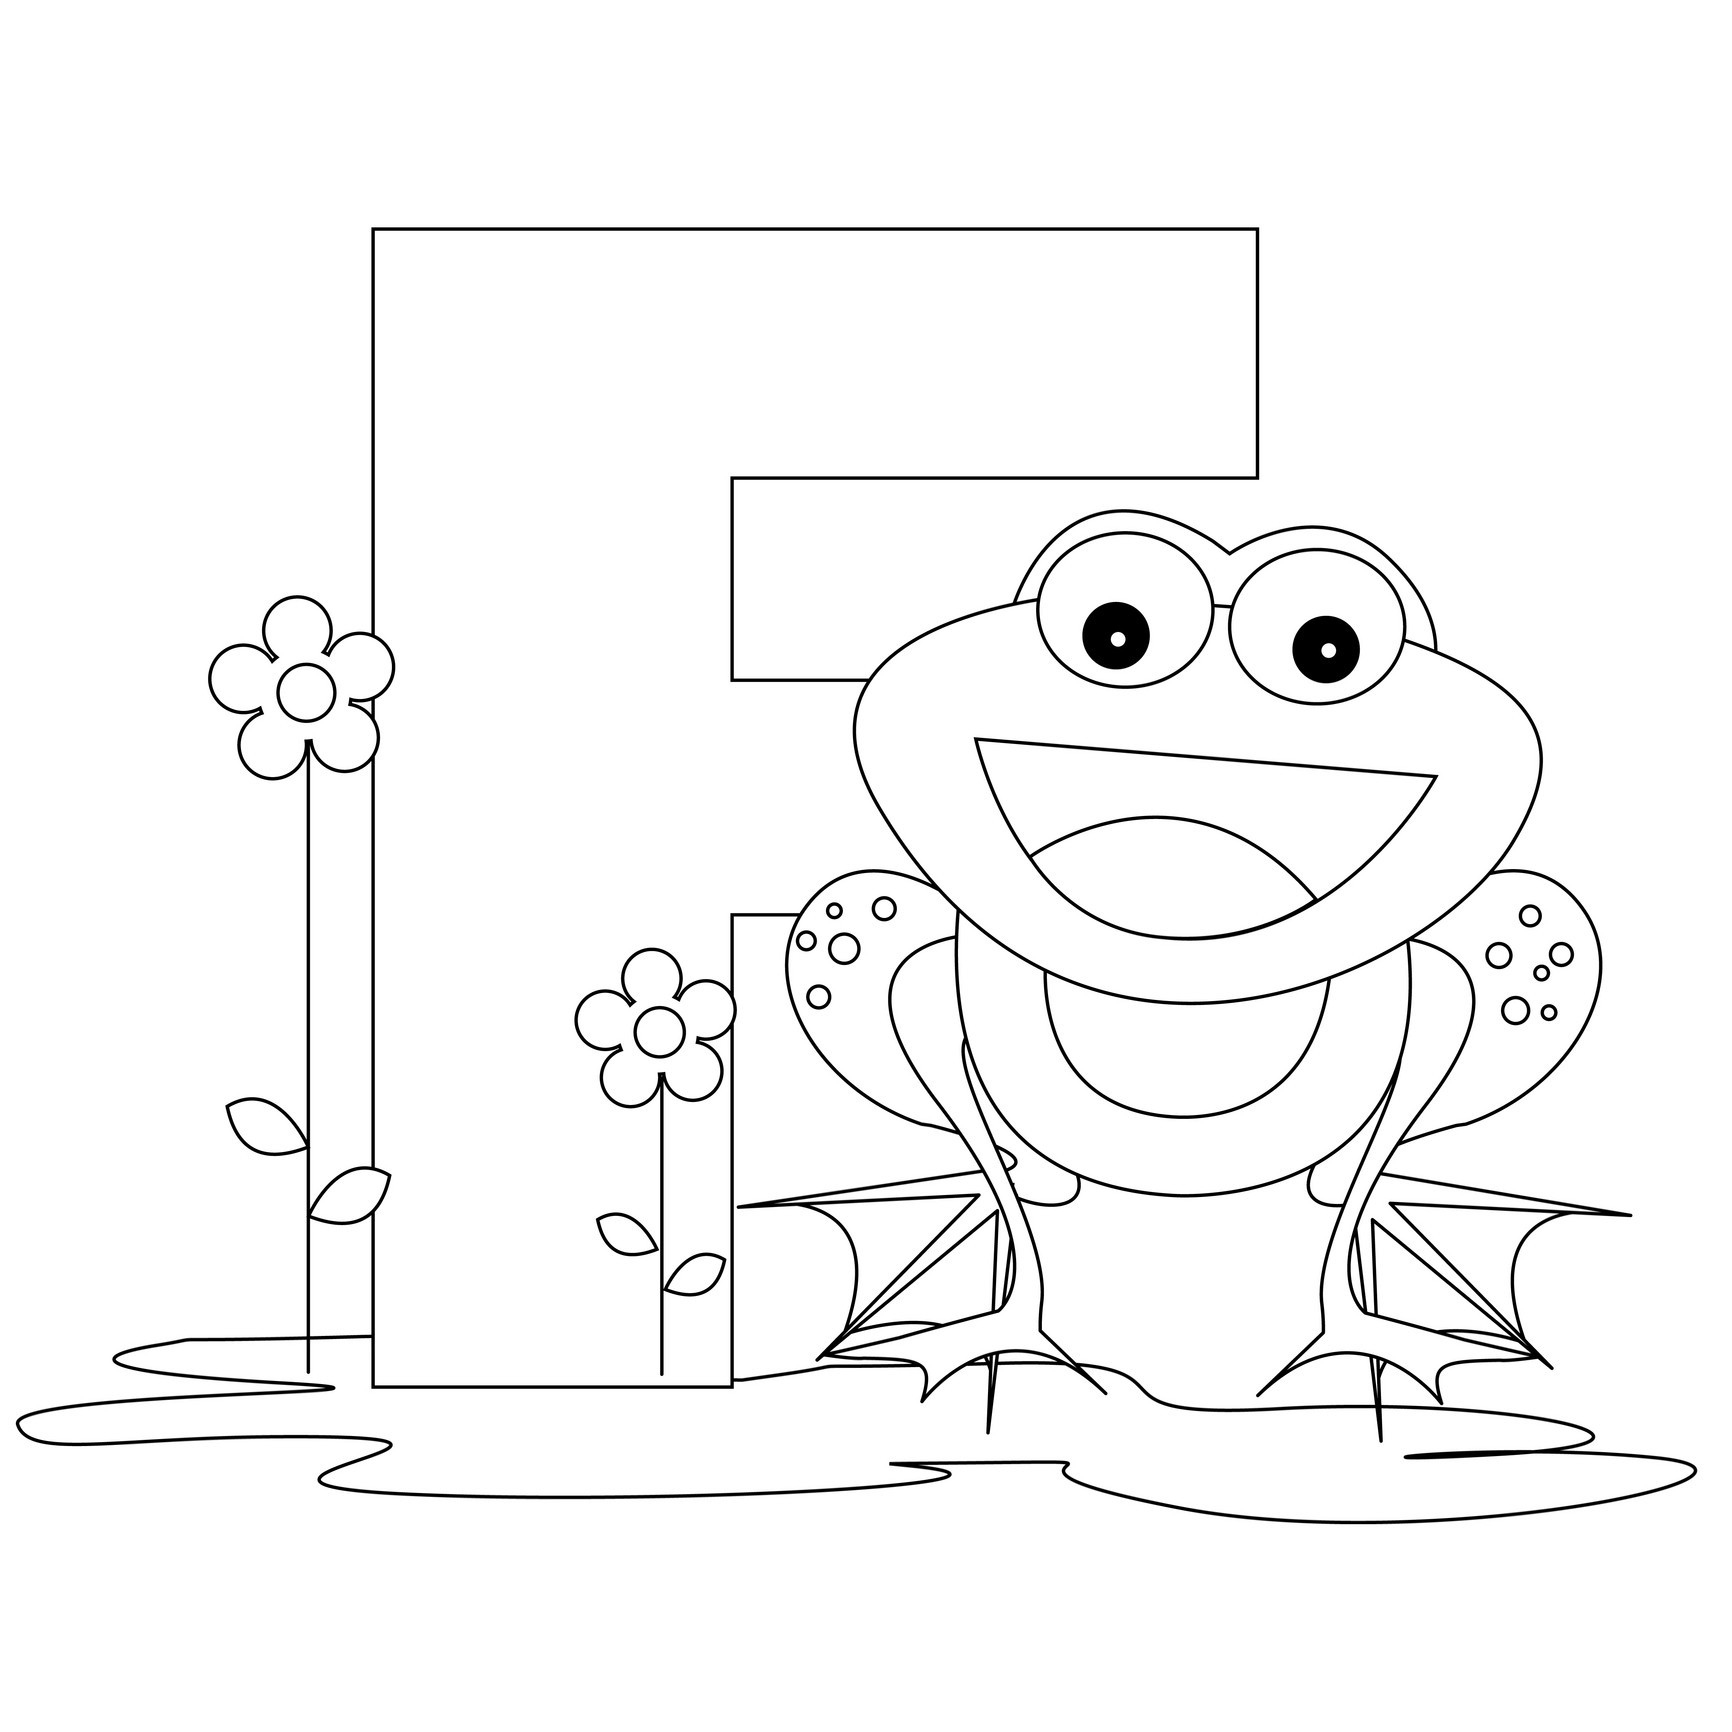 free printable alphabet coloring pages for kids - best coloring ... - Alphabet Printable Coloring Pages